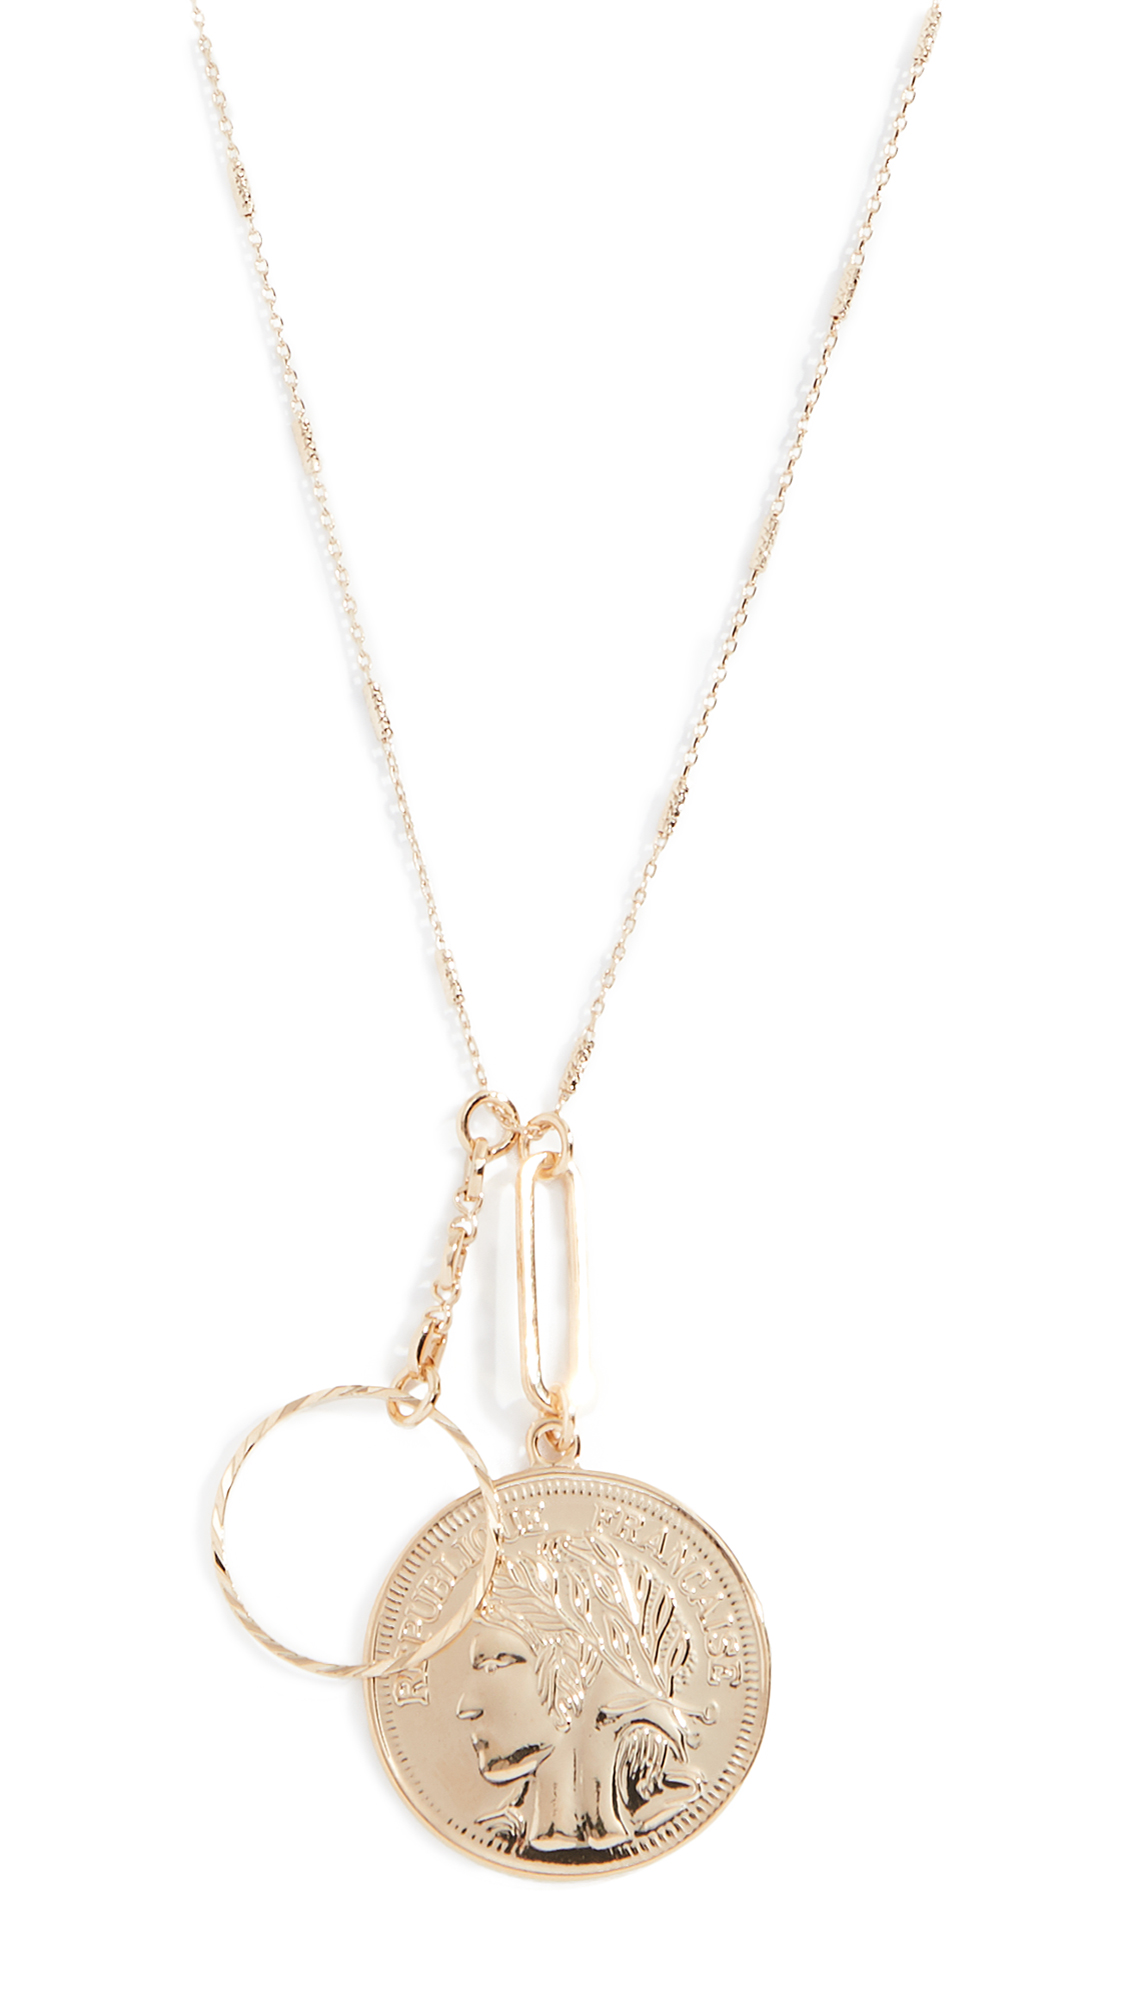 CLOVERPOST BOOST NECKLACE